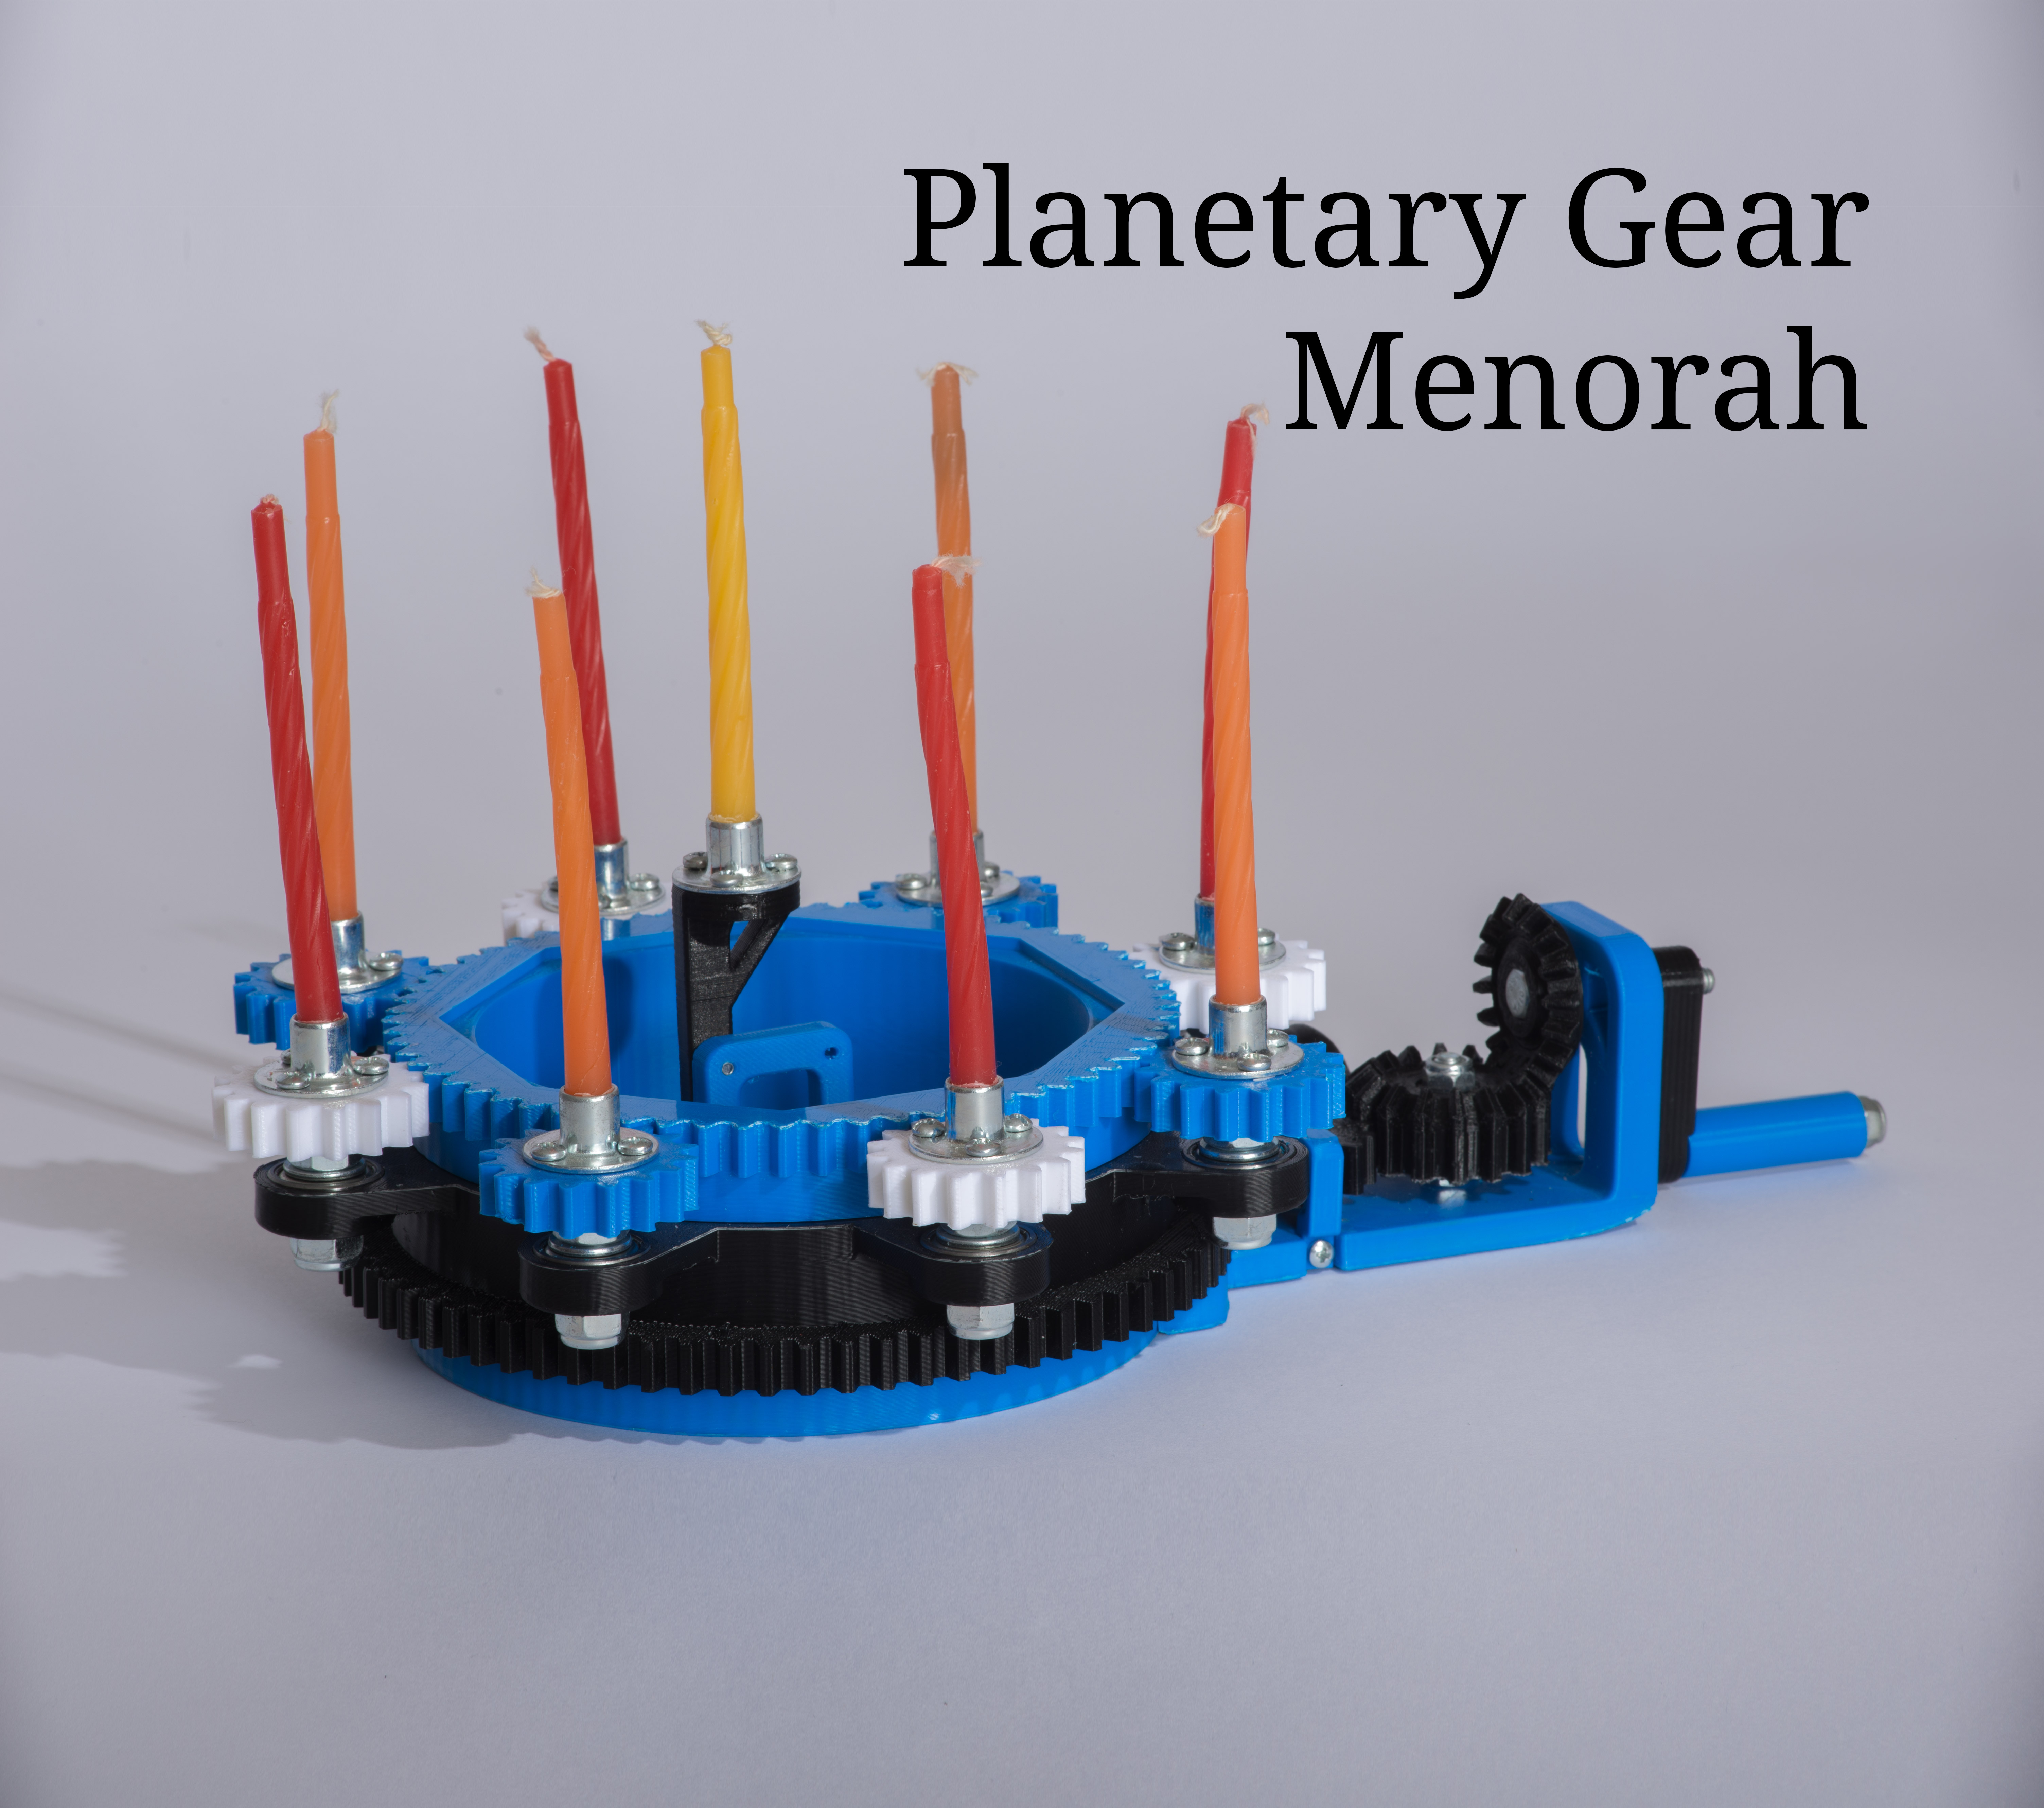 Picture of How to Make a Planetary Gear Menorah